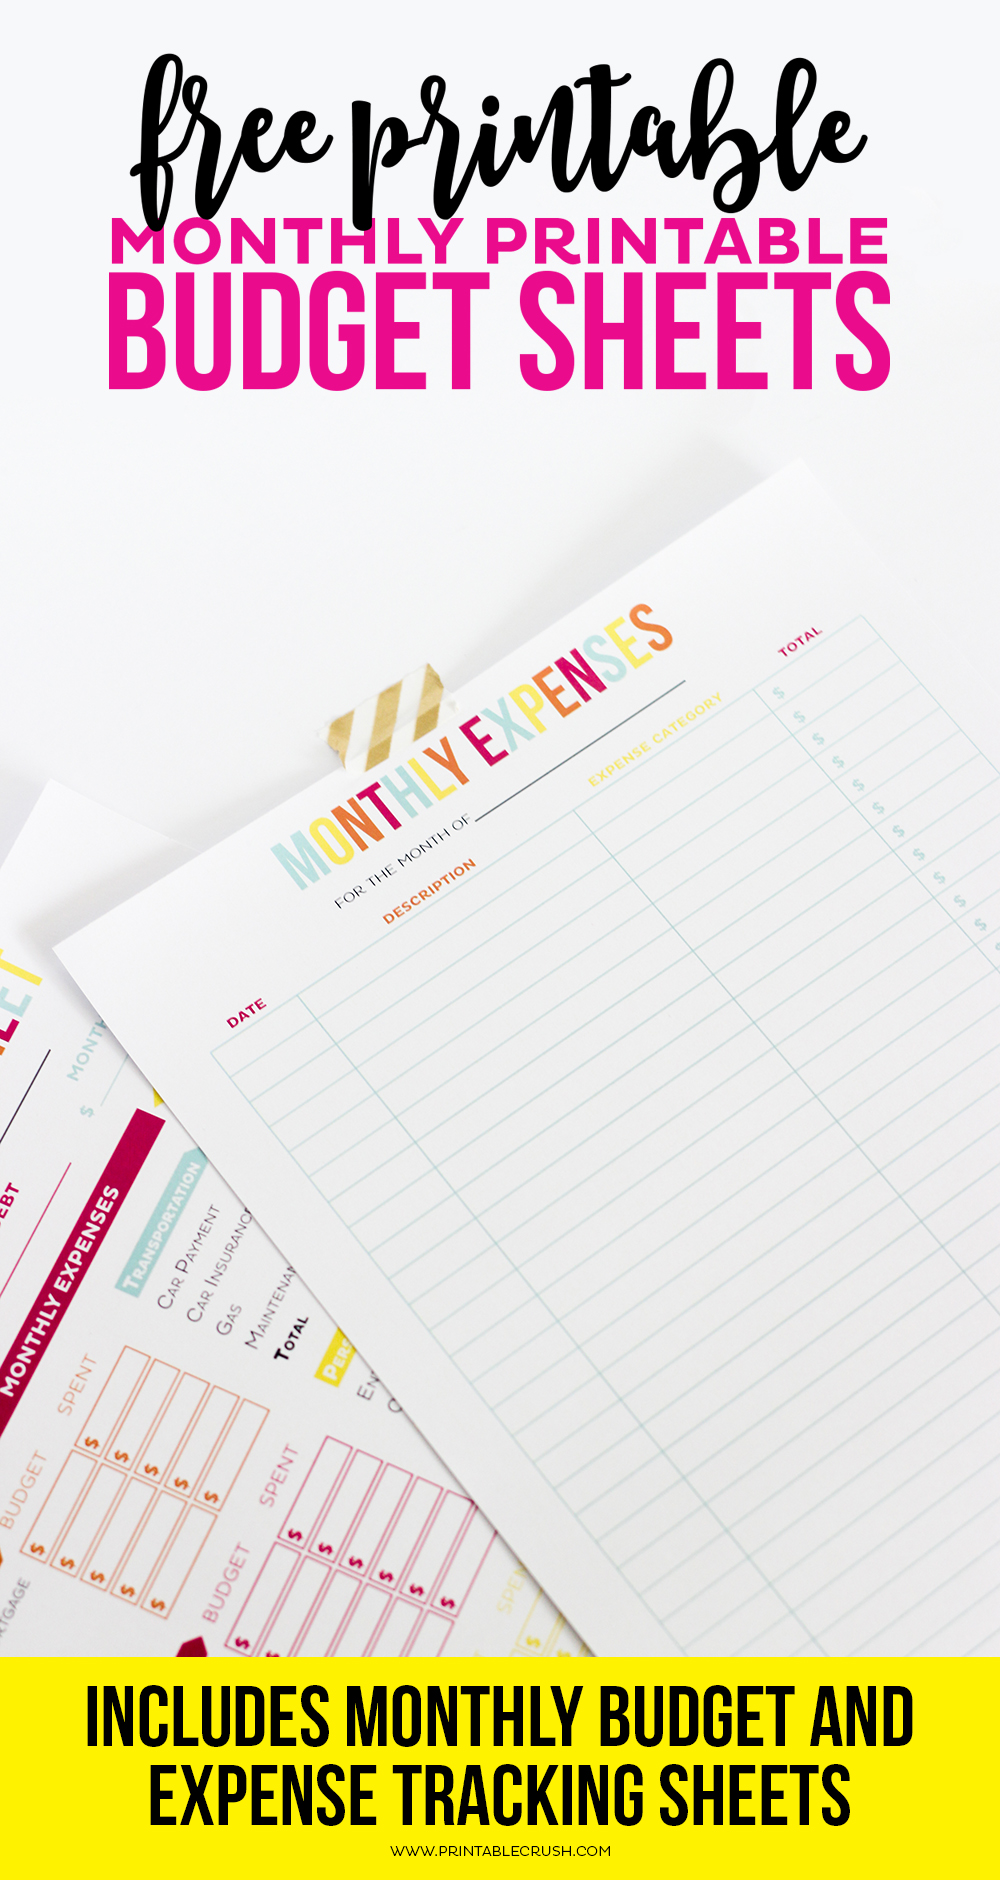 Monthly-Printable-Budget-Sheets-12-copy.jpg